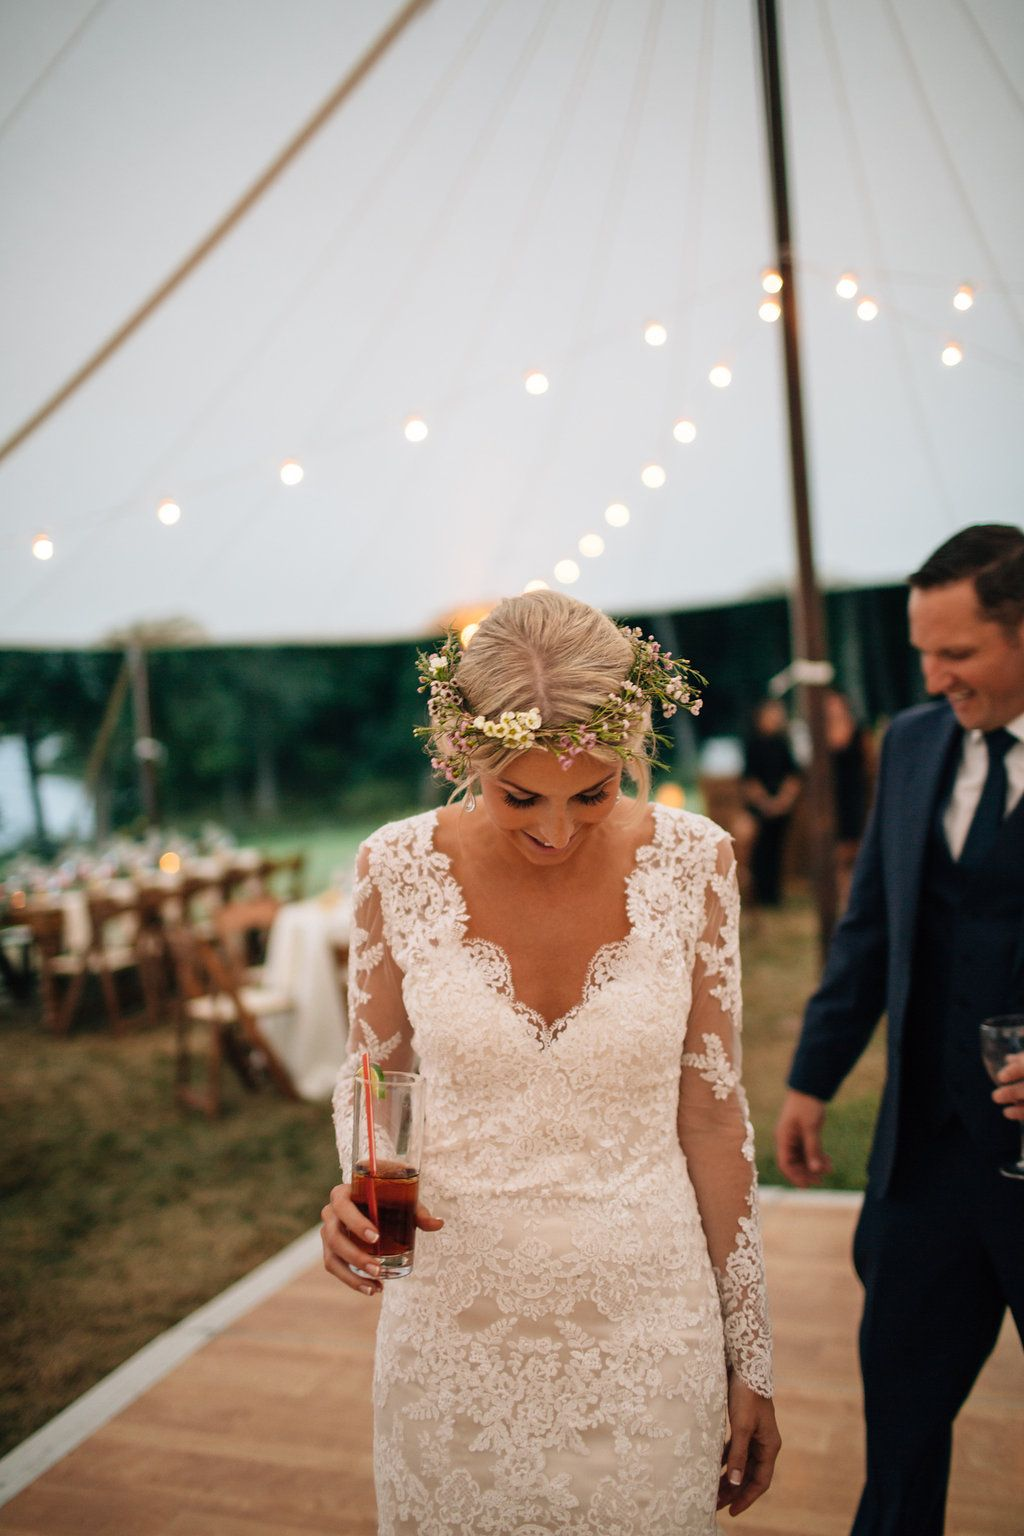 Maggie Bride Shannon wore Melanie with custom sleeves by Maggie Sottero at  her classic and ethereal Hudson Valley wedding  cfbff3d89d5c